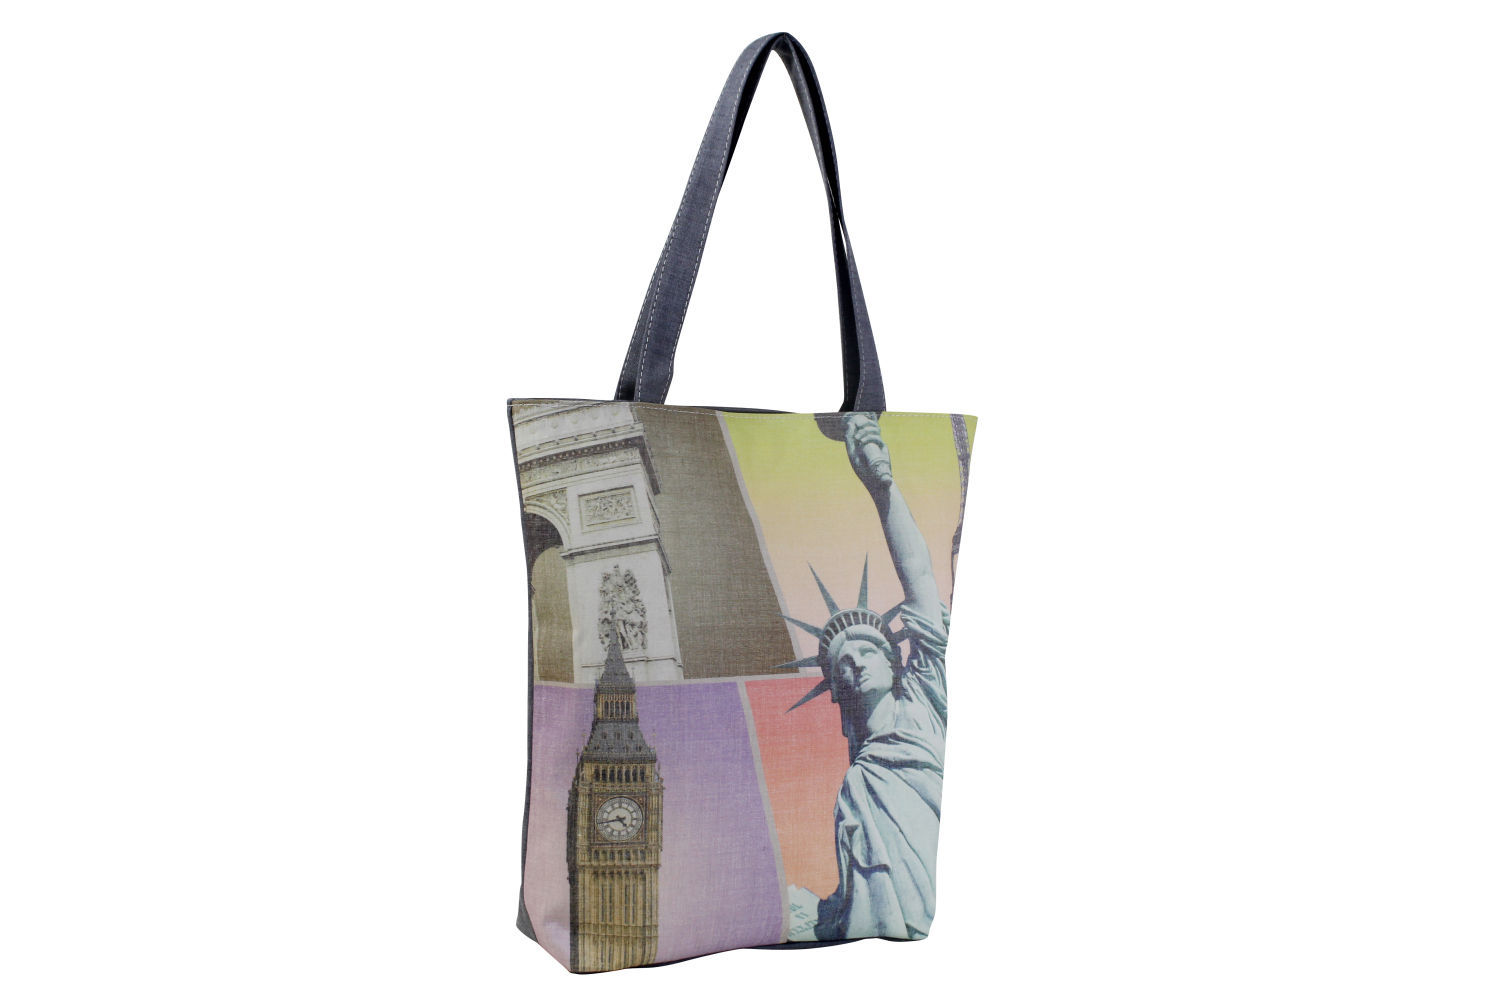 Statue Liberty Big Ben Shopper Beach Gym Tote Bag Handbag Purse Shoulder Gray